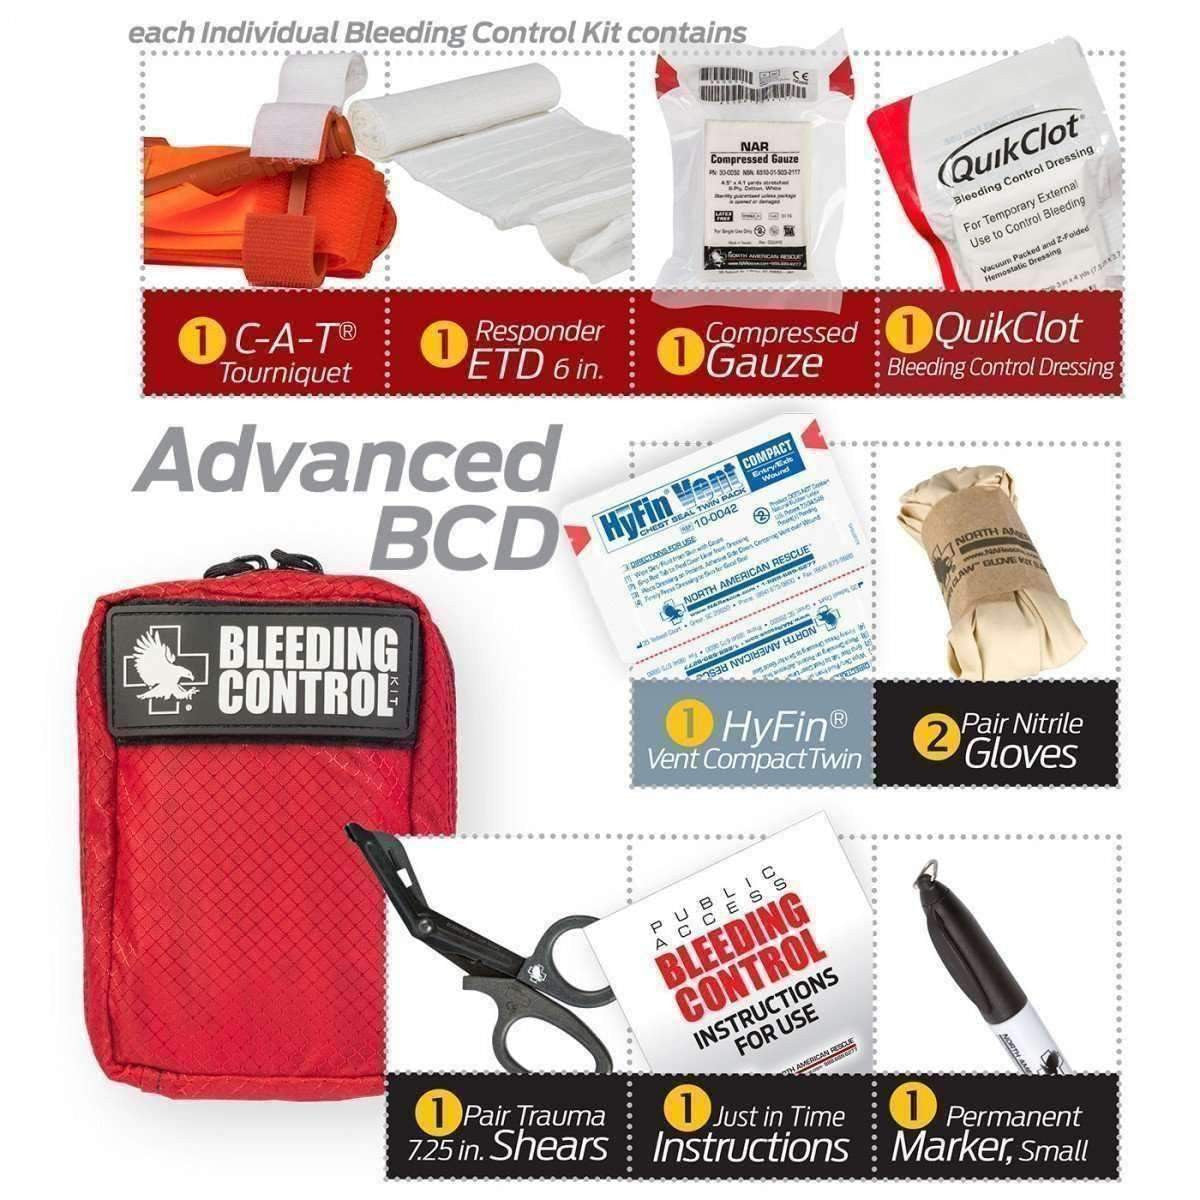 North American Rescue,Public Access Bleeding Control 8 Pack - Nylon,medic-packs.